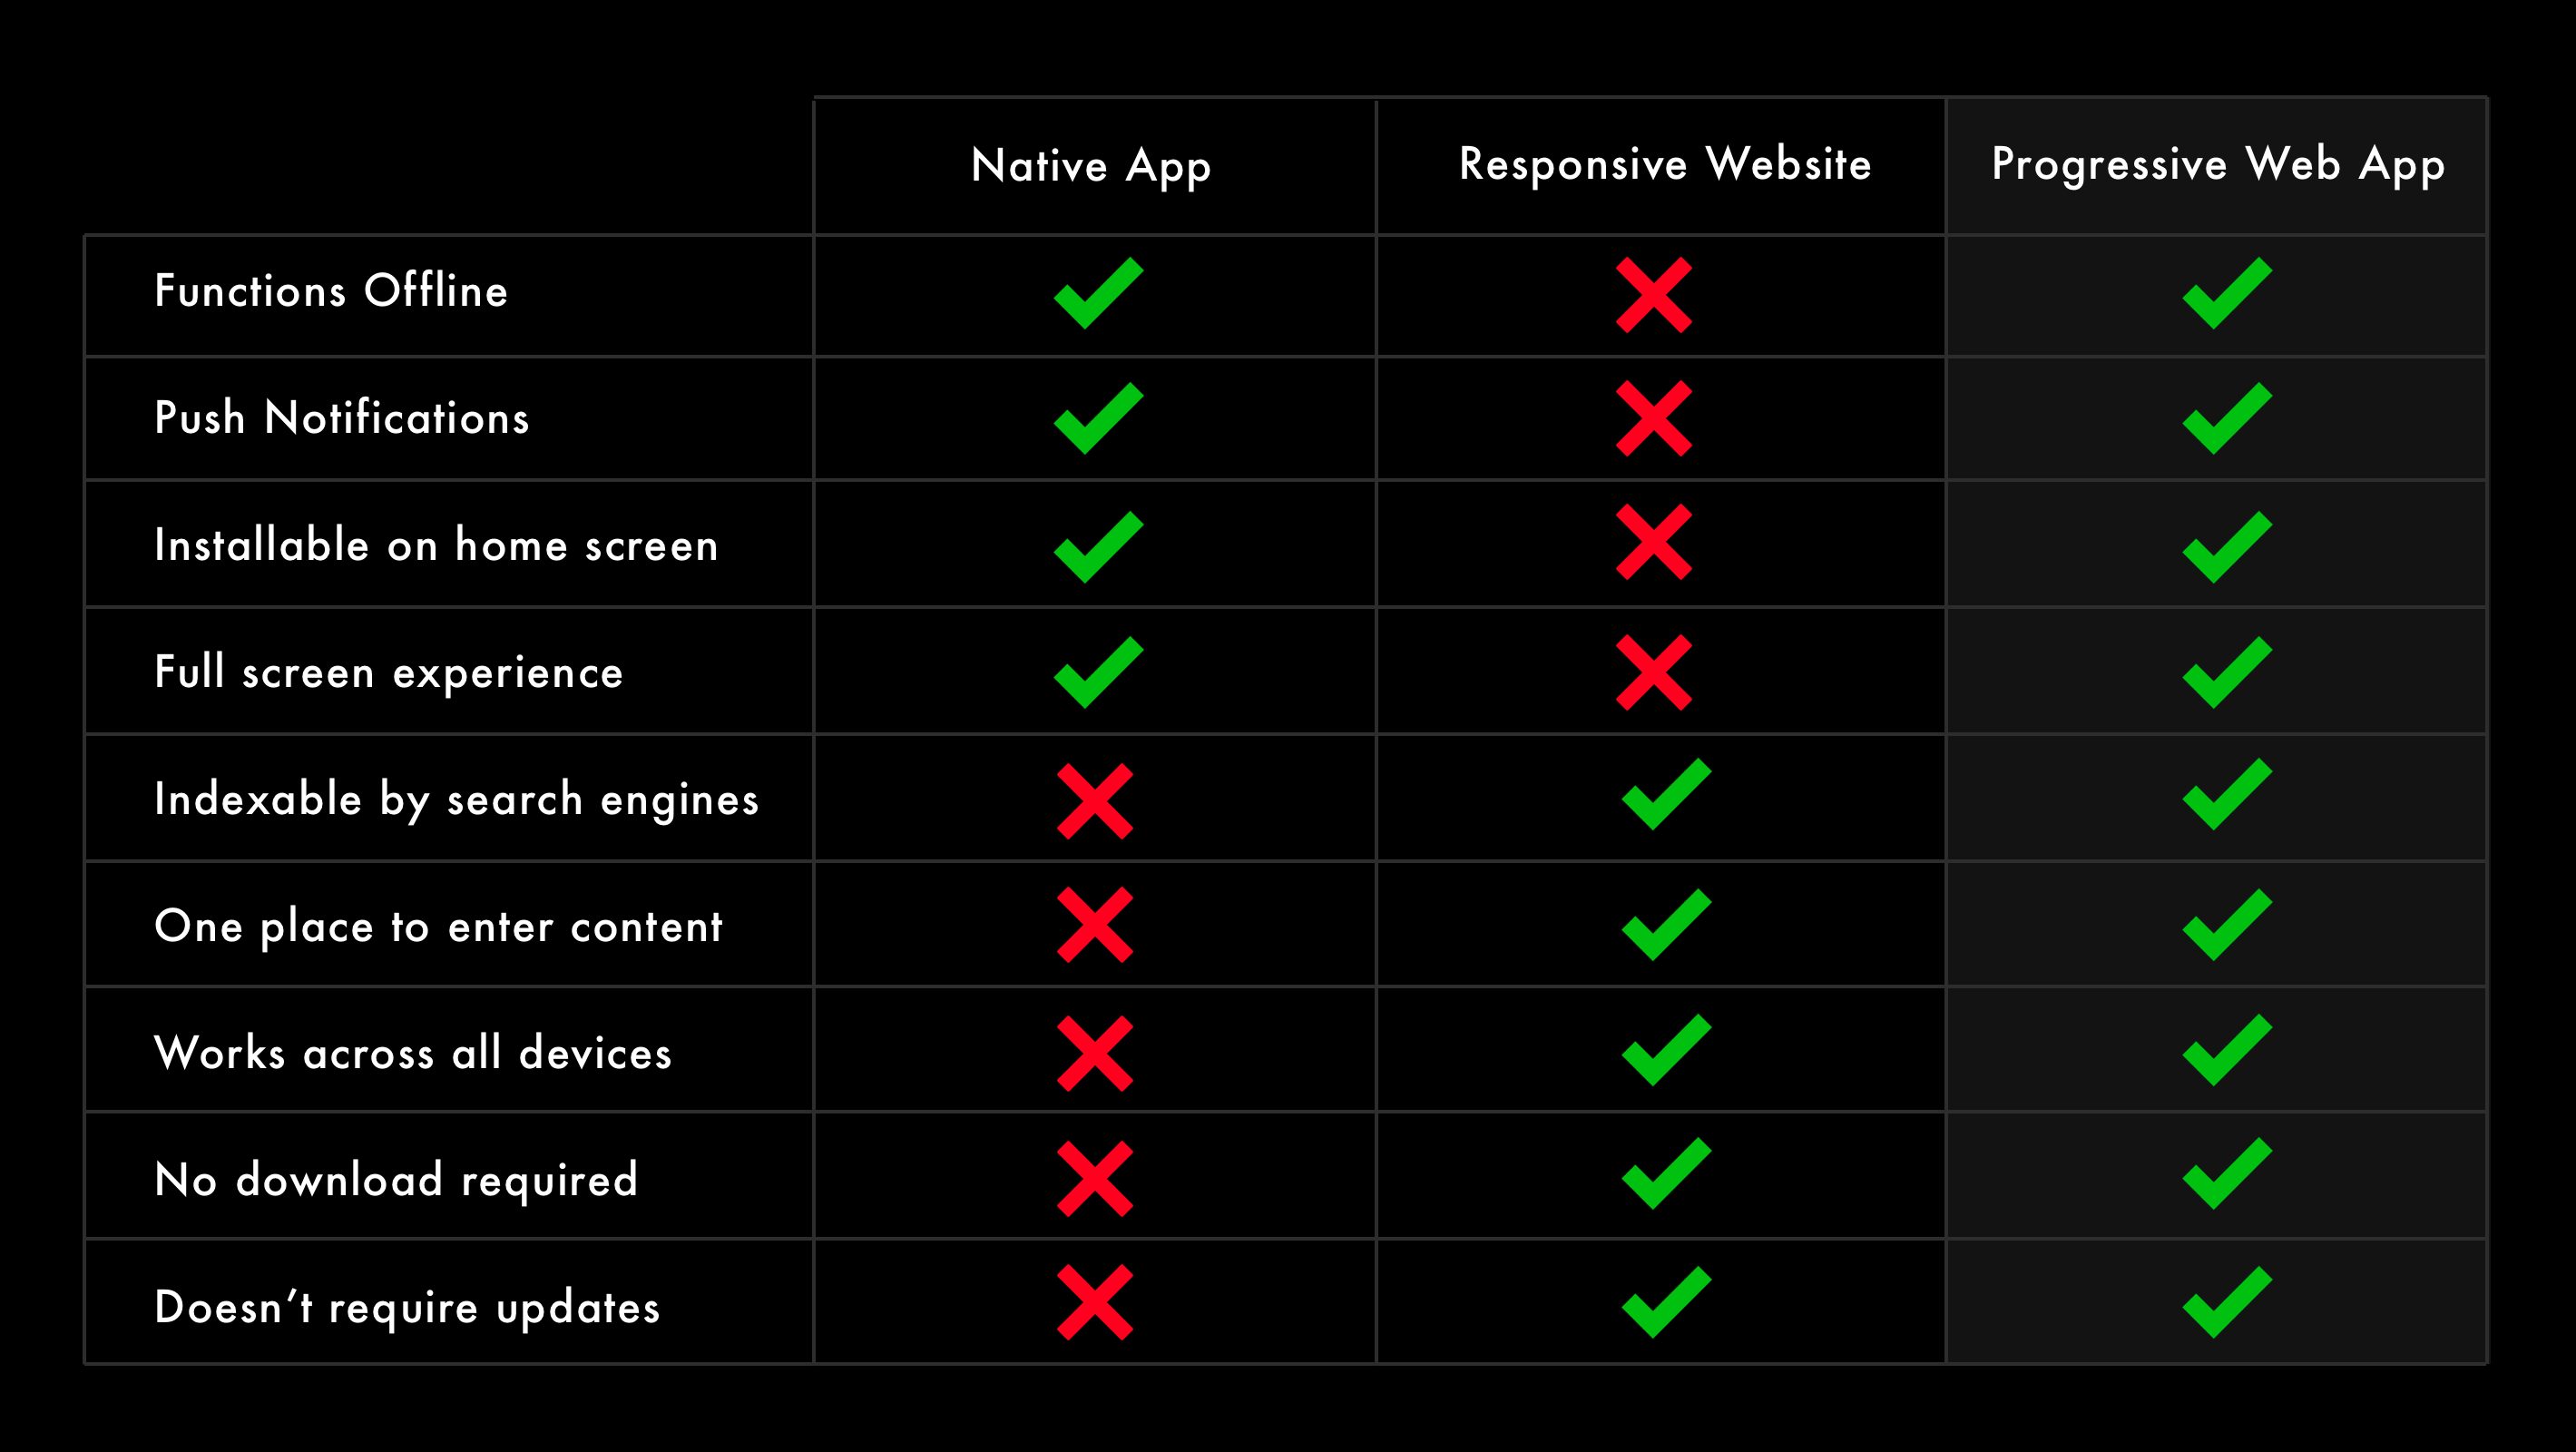 PWA's versus other platforms